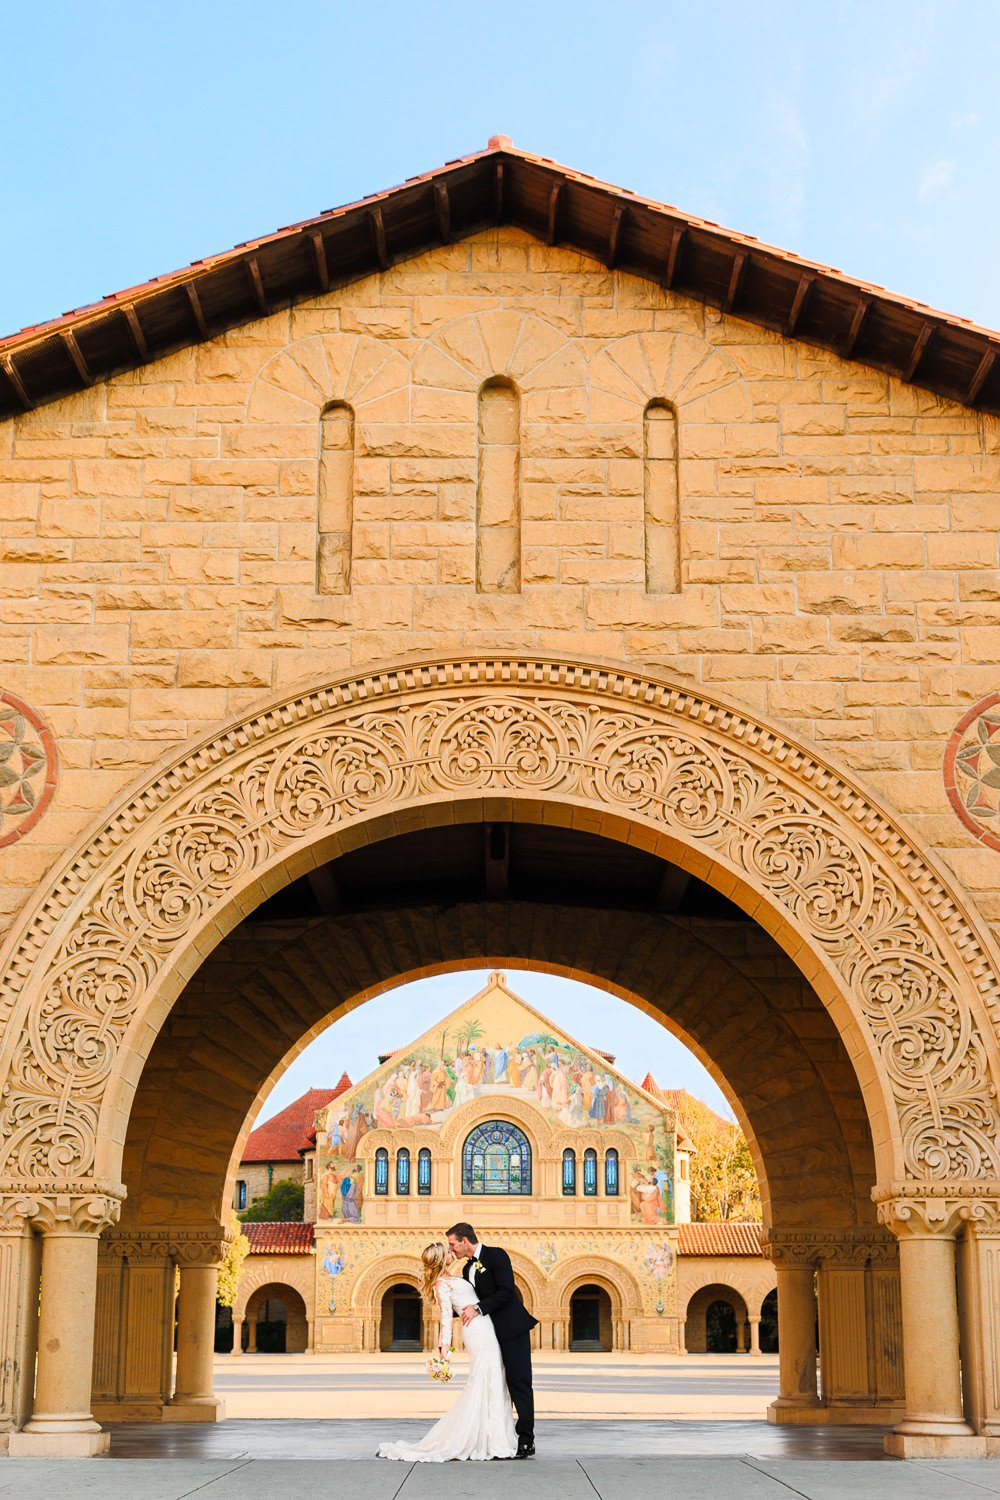 stanford-university-wedding-romantic-portraits-arpit-mehta-san-francisco-photographer-28